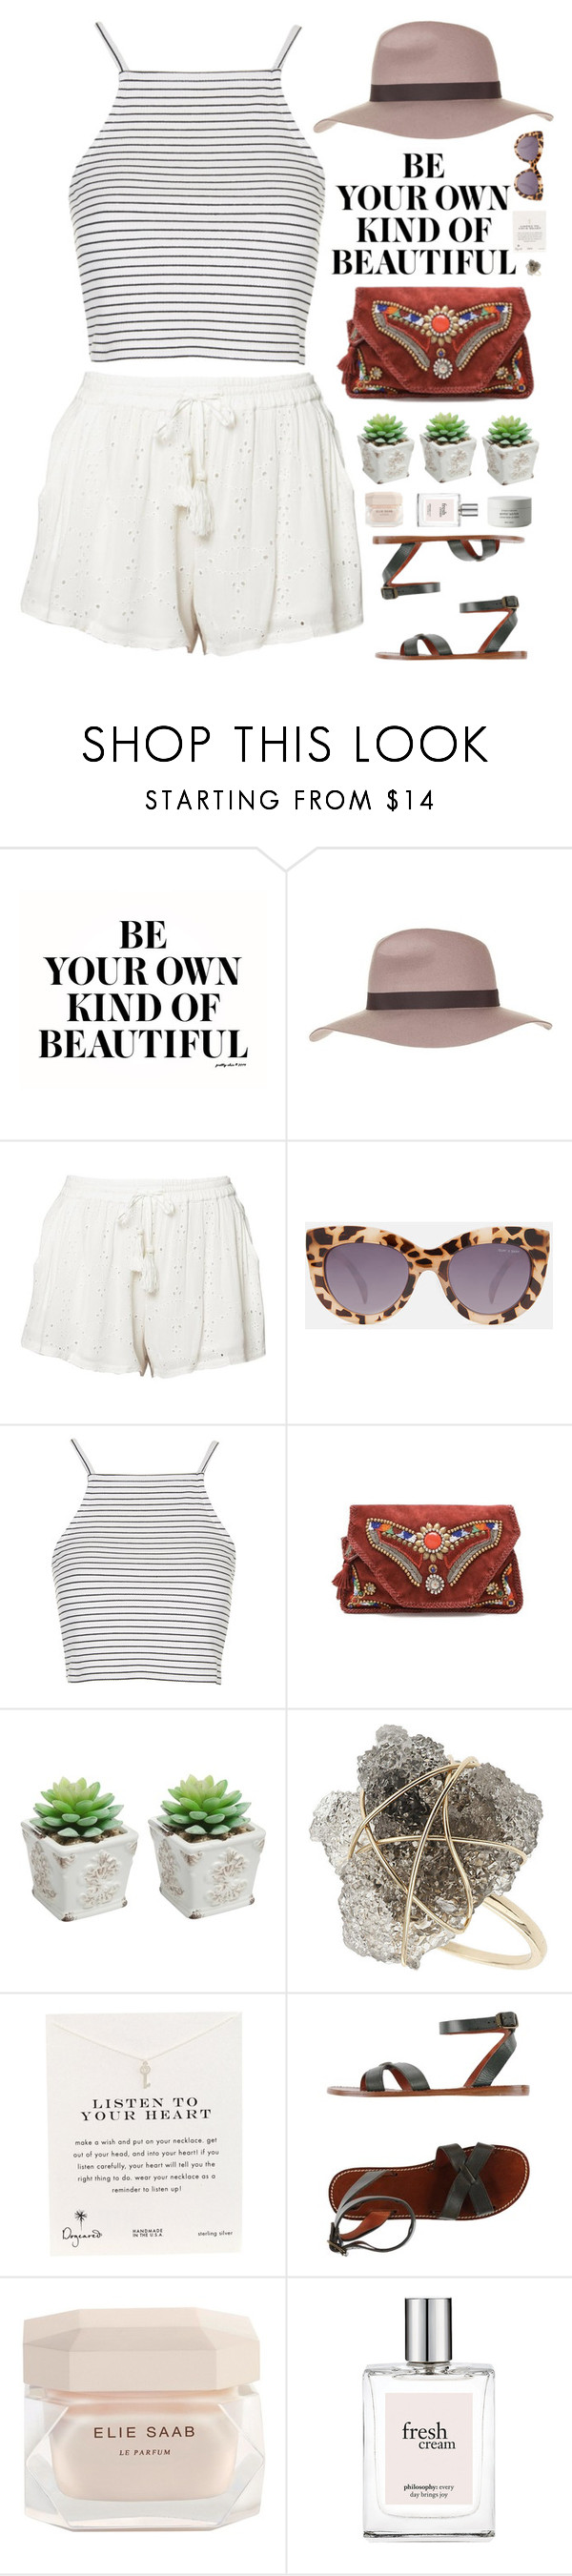 """""""You've taught me how to break a heart."""" by biljanamilenkovic ❤ liked on Polyvore featuring Topshop, Free People, Quay, Antik Batik, Dogeared, Isabel Marant, Elie Saab, philosophy, Byredo and stripes"""